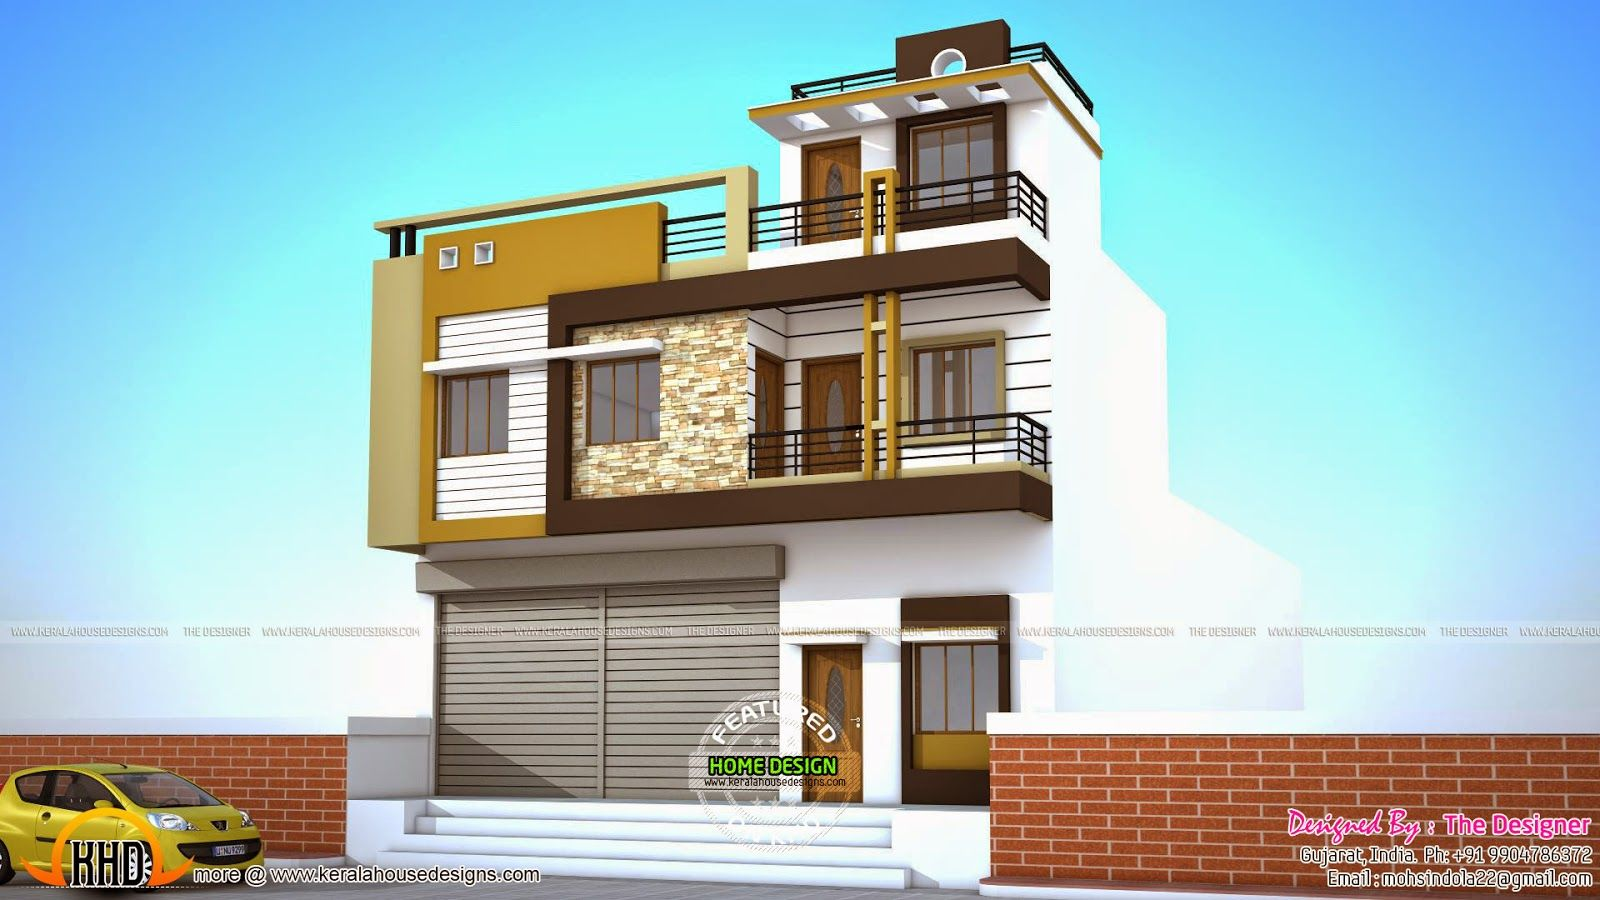 2 house plans with shops on ground floor house ground for House plans with shop attached